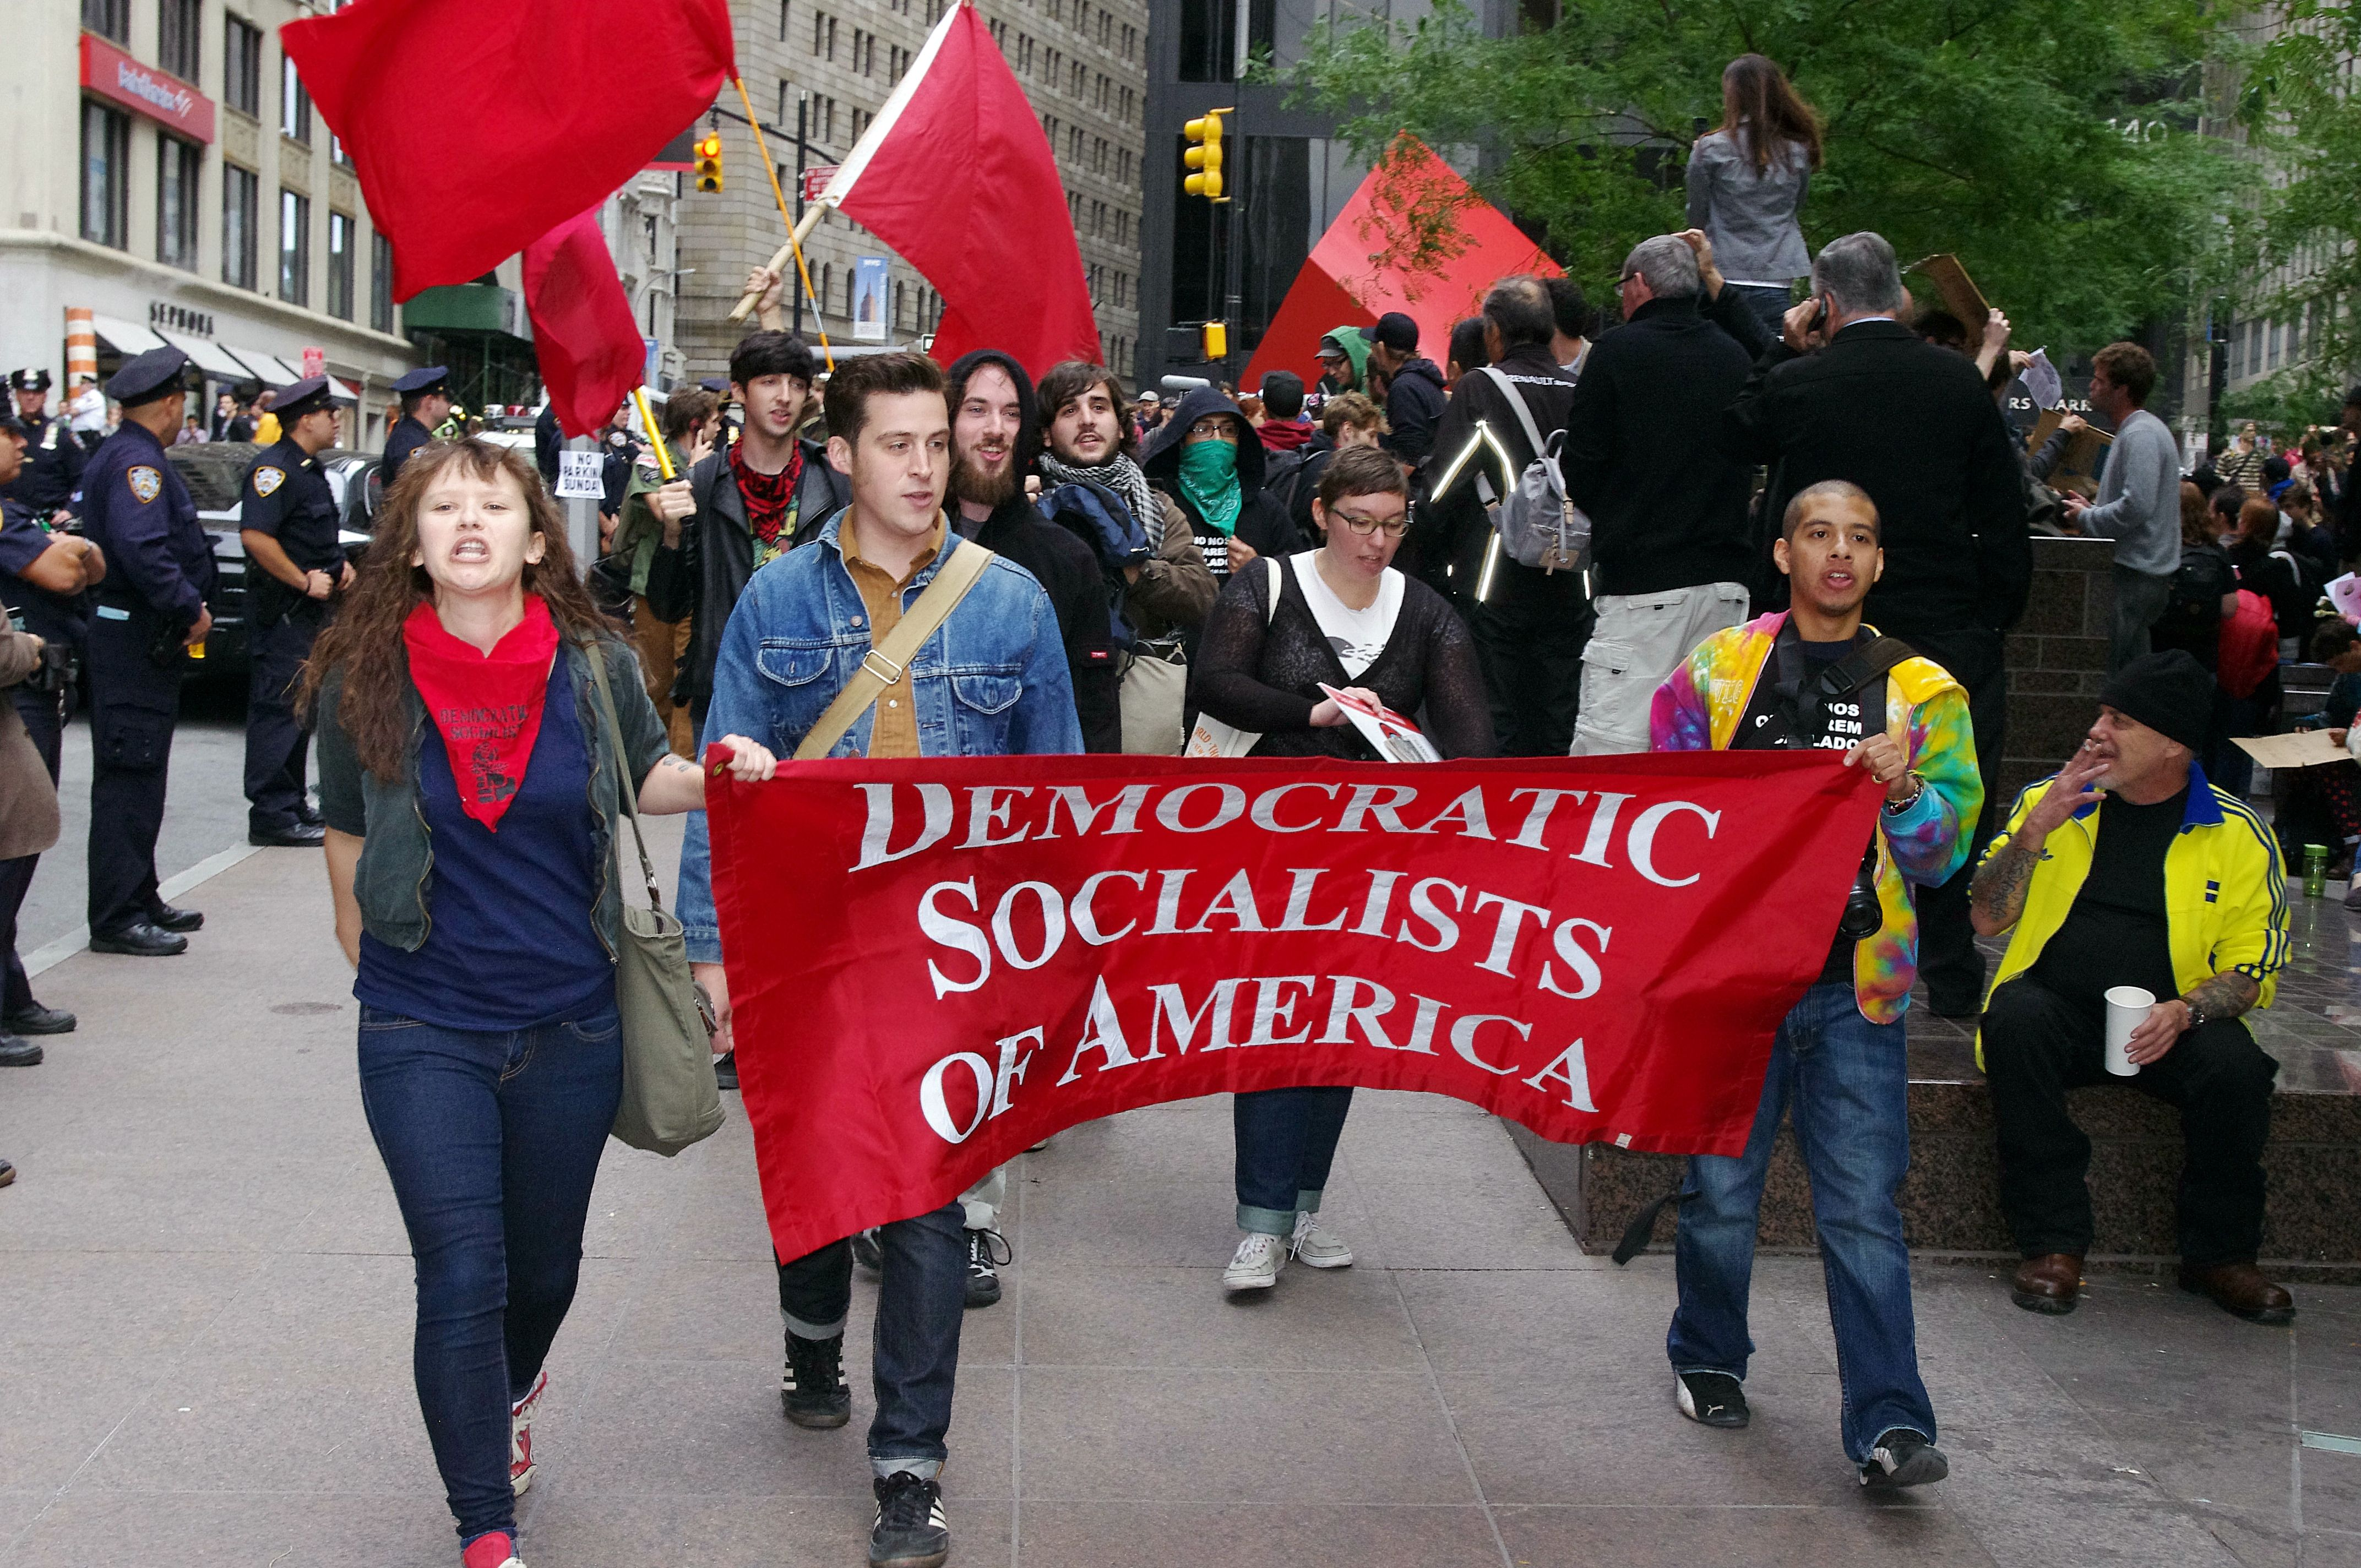 A delegation of the Democratic Socialists of America participate in the 2011 Occupy Wall Street protests.